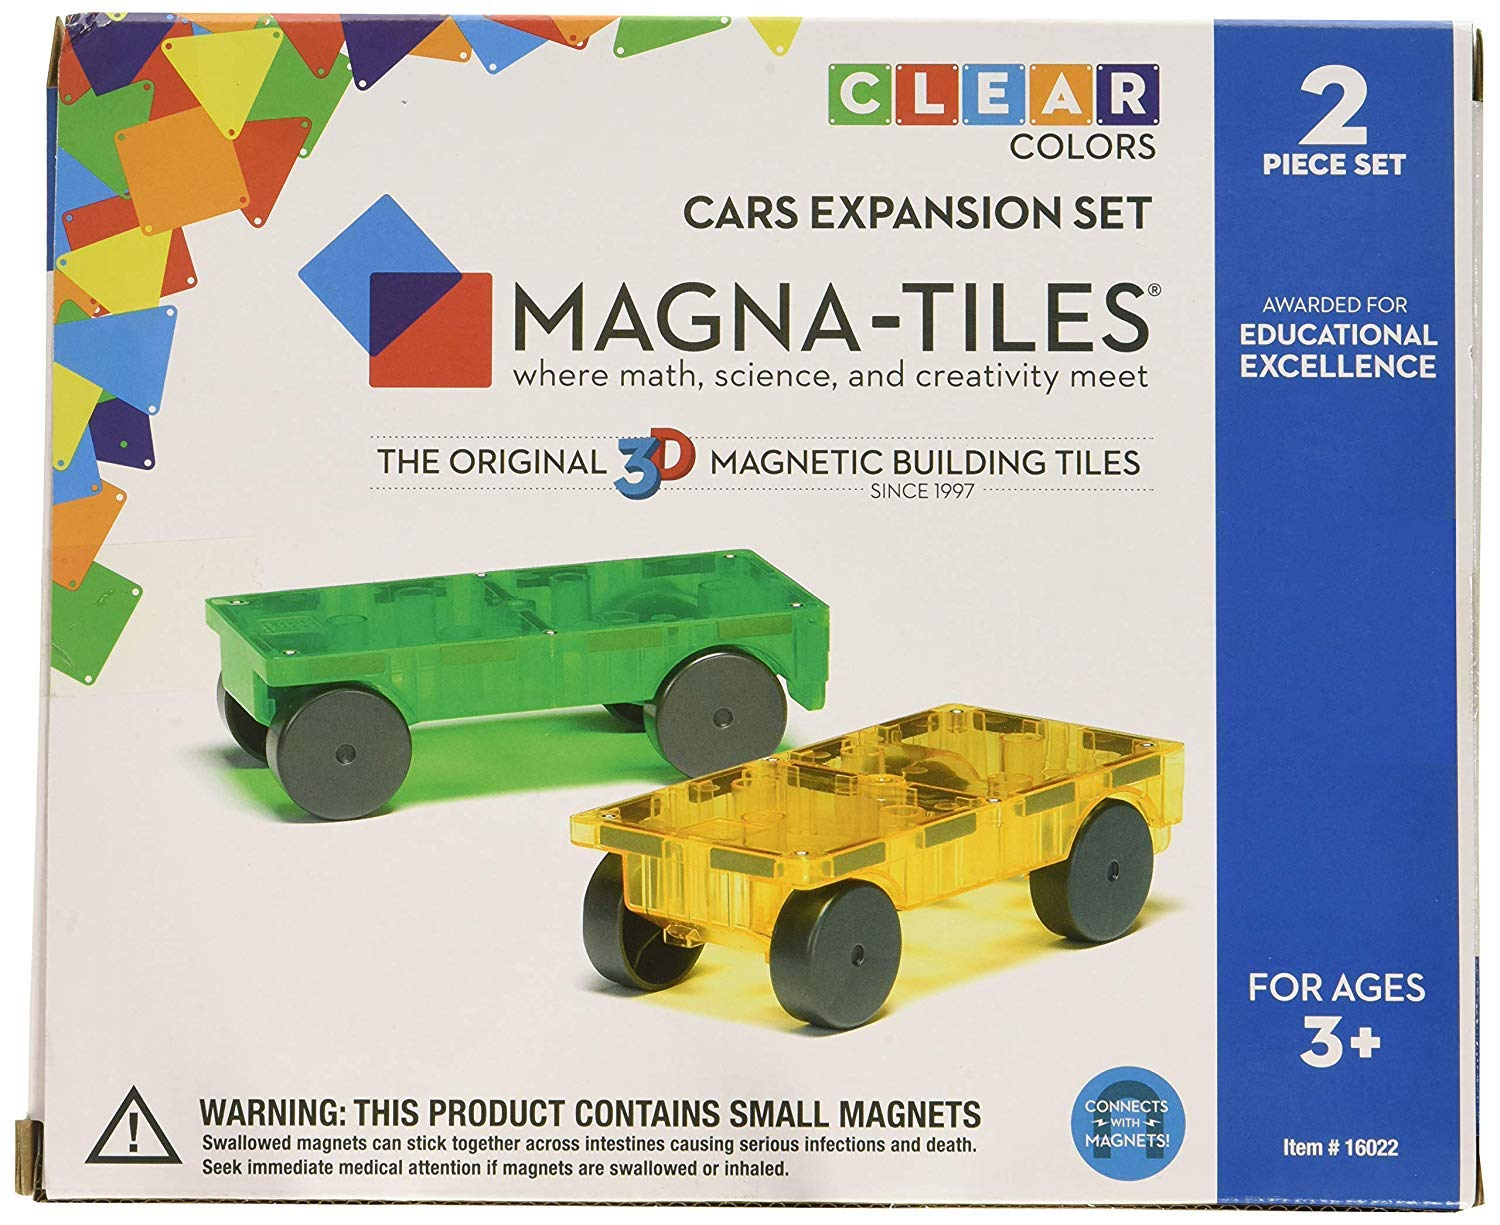 Magna-Tiles 32-Piece Clear Colors Set - The Original, Award-Winning Magnetic Building Tiles - Creativity and Educational - STEM Approved Bundled 2-Piece Car Expansion Set by Magna-Tiles (Image #3)